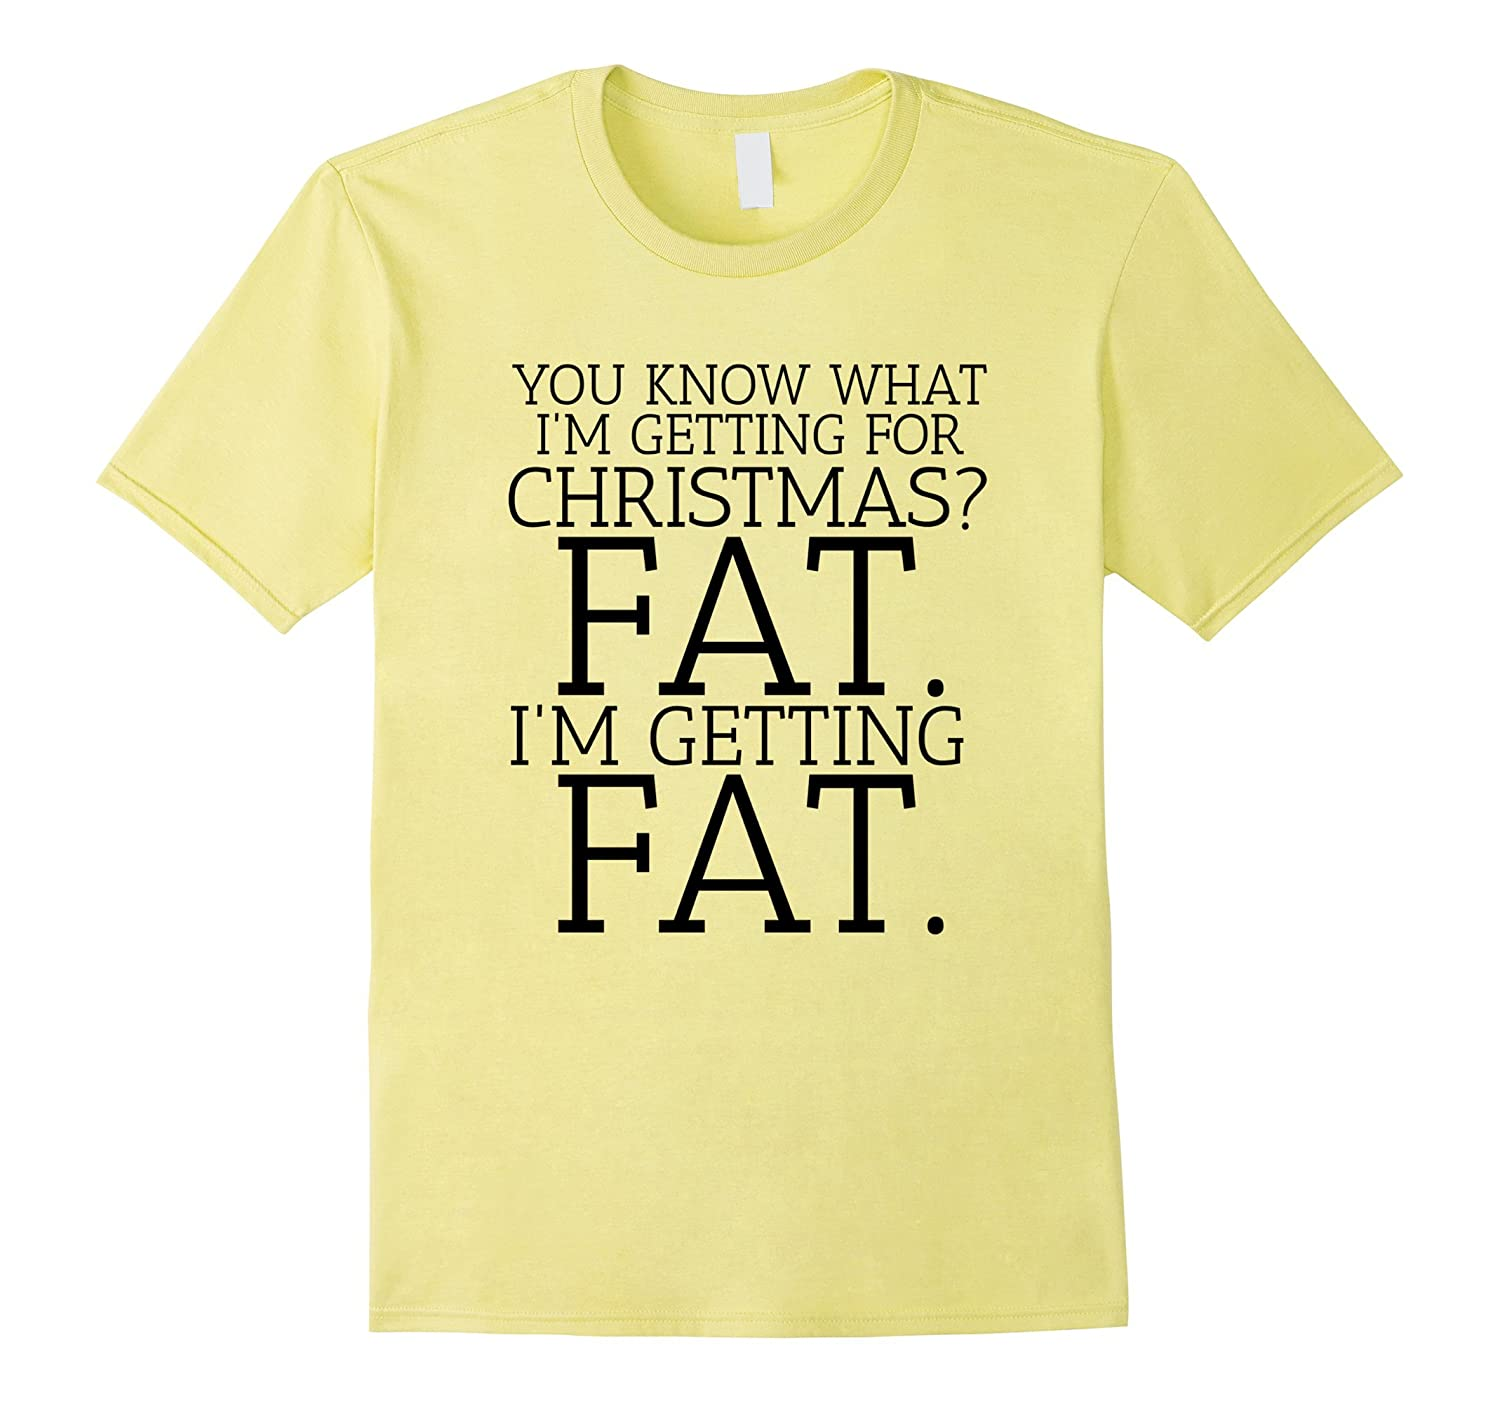 b7a5e6cd Getting Fat For Christmas Funny Foodie Food T-Shirt-ANZ ⋆ Anztshirt